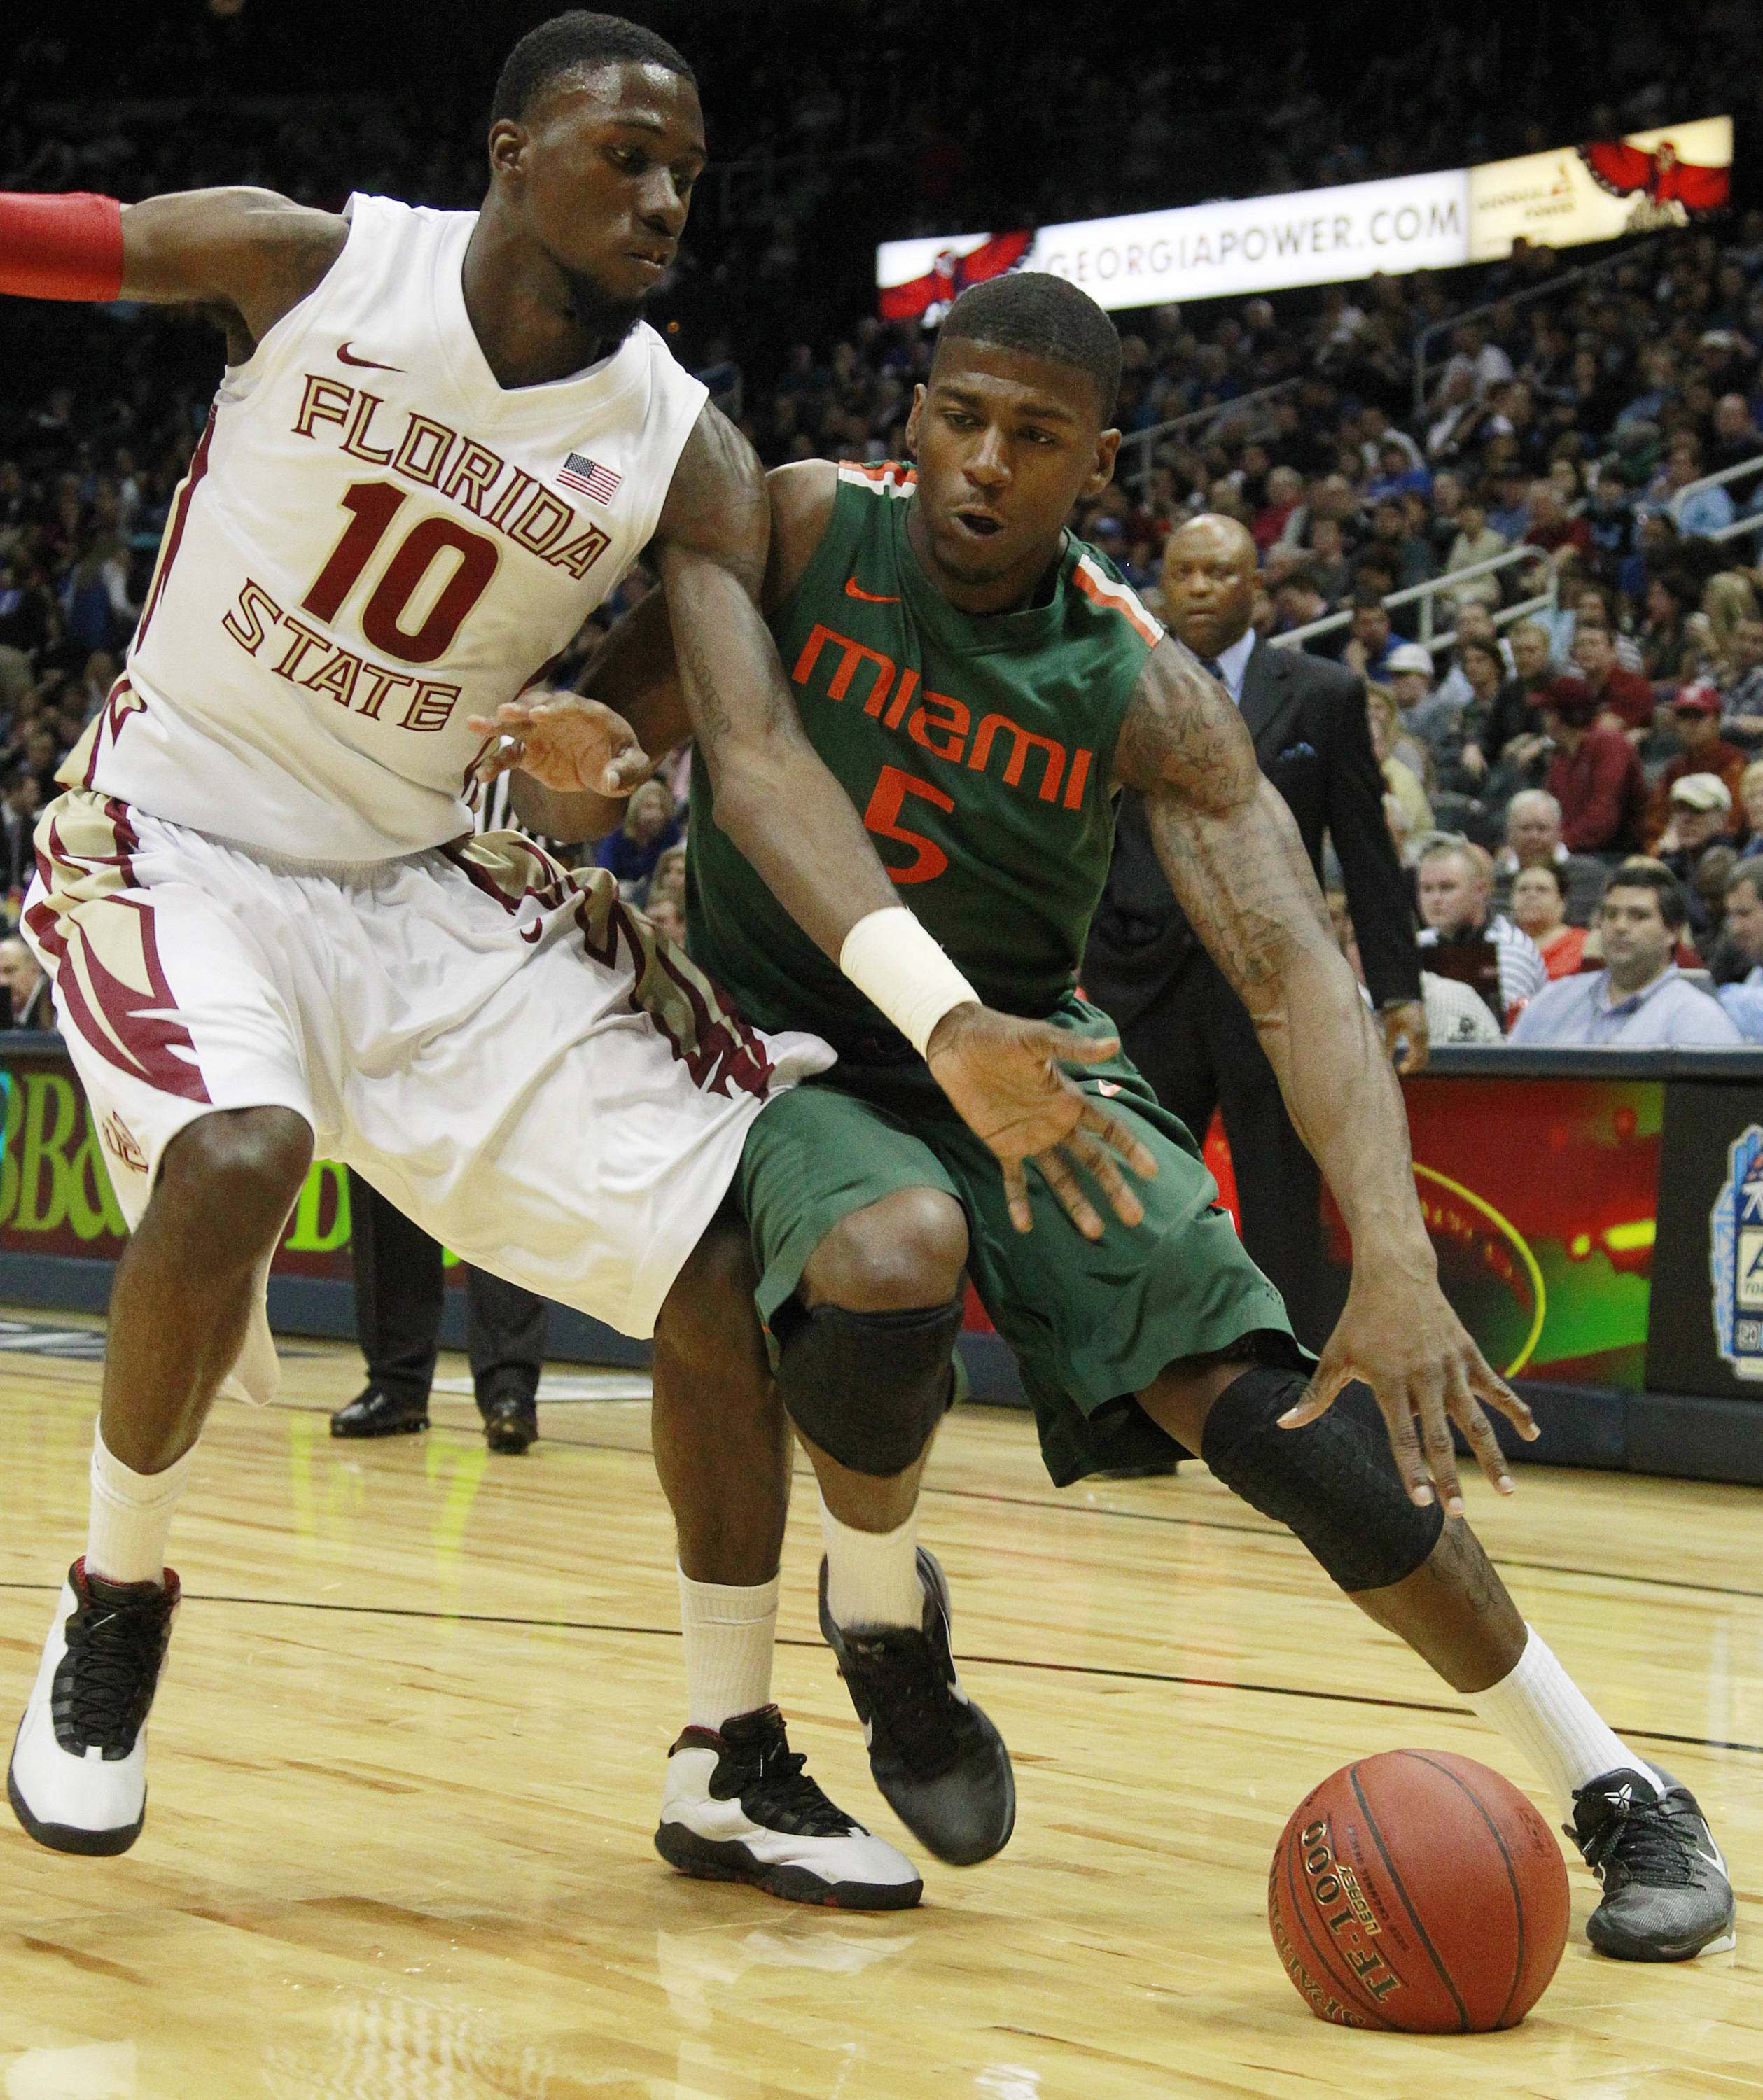 Miami guard/forward DeQuan Jones (5) works against Florida State forward Okaro White (10) during the first half of an NCAA college basketball game in the quarterfinals of the Atlantic Coast Conference tournament, Friday, March 9, 2012, in Atlanta. (AP Photo/John Bazemore)